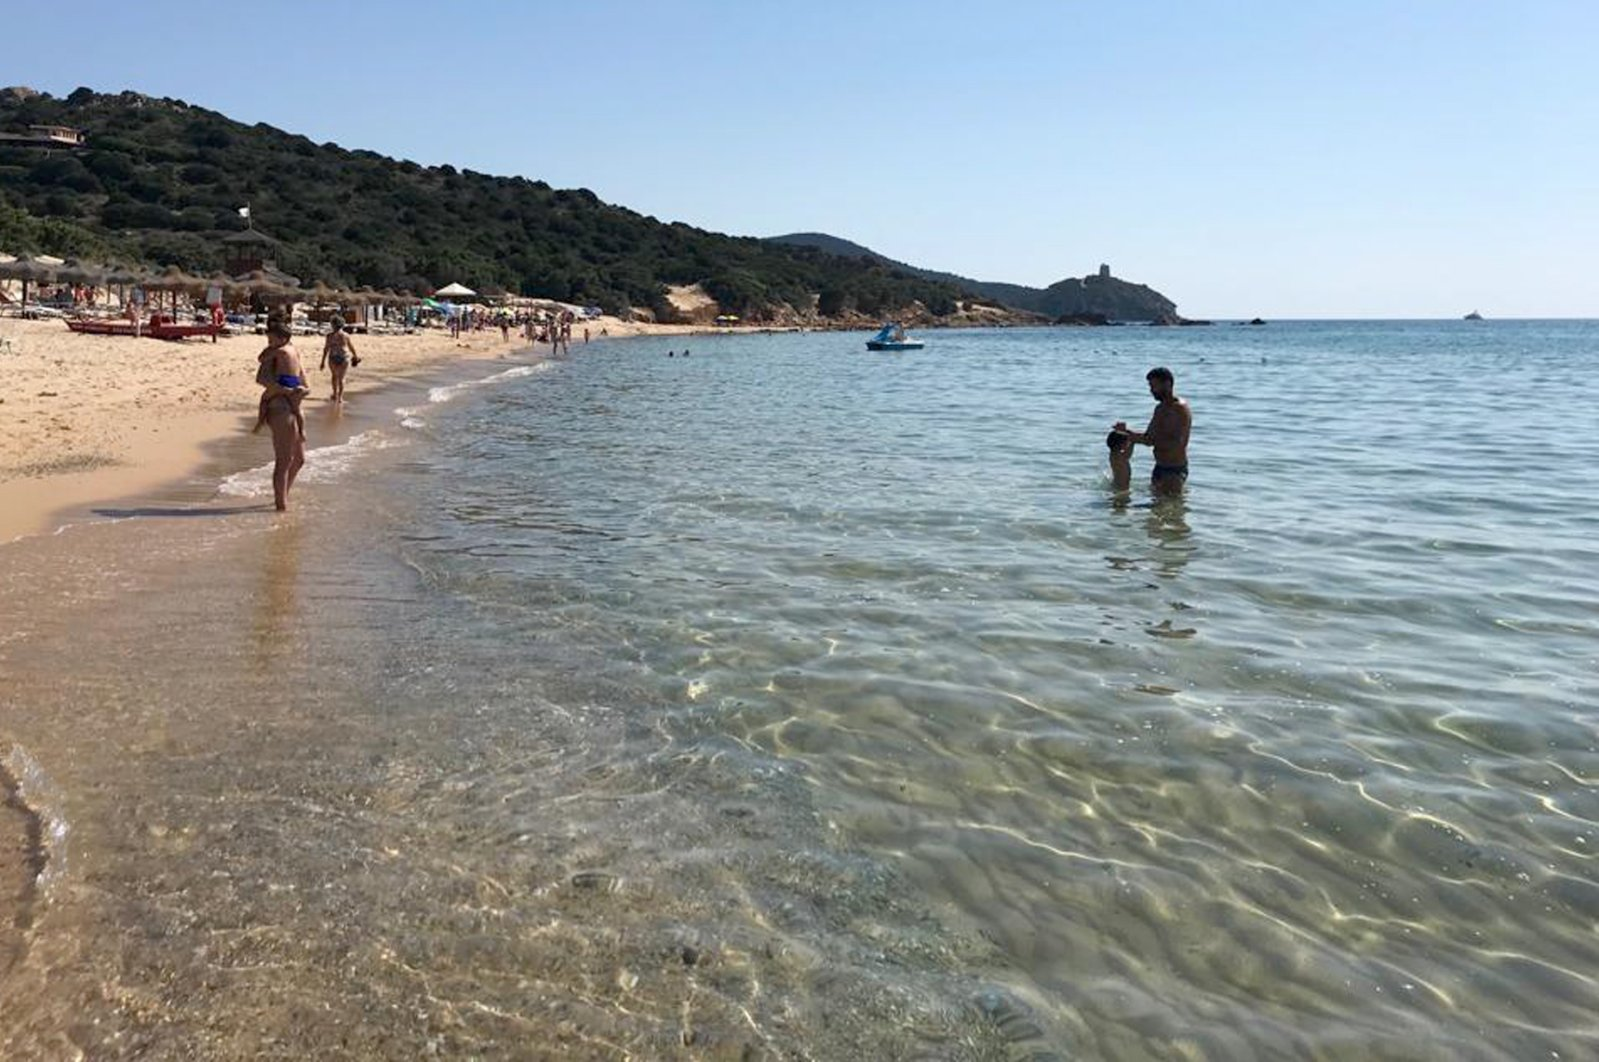 People enjoy the white sand and pristine waters of Chia beach, on the Italian island of Sardinia, Italy, June 29, 2019. (AP Photo)